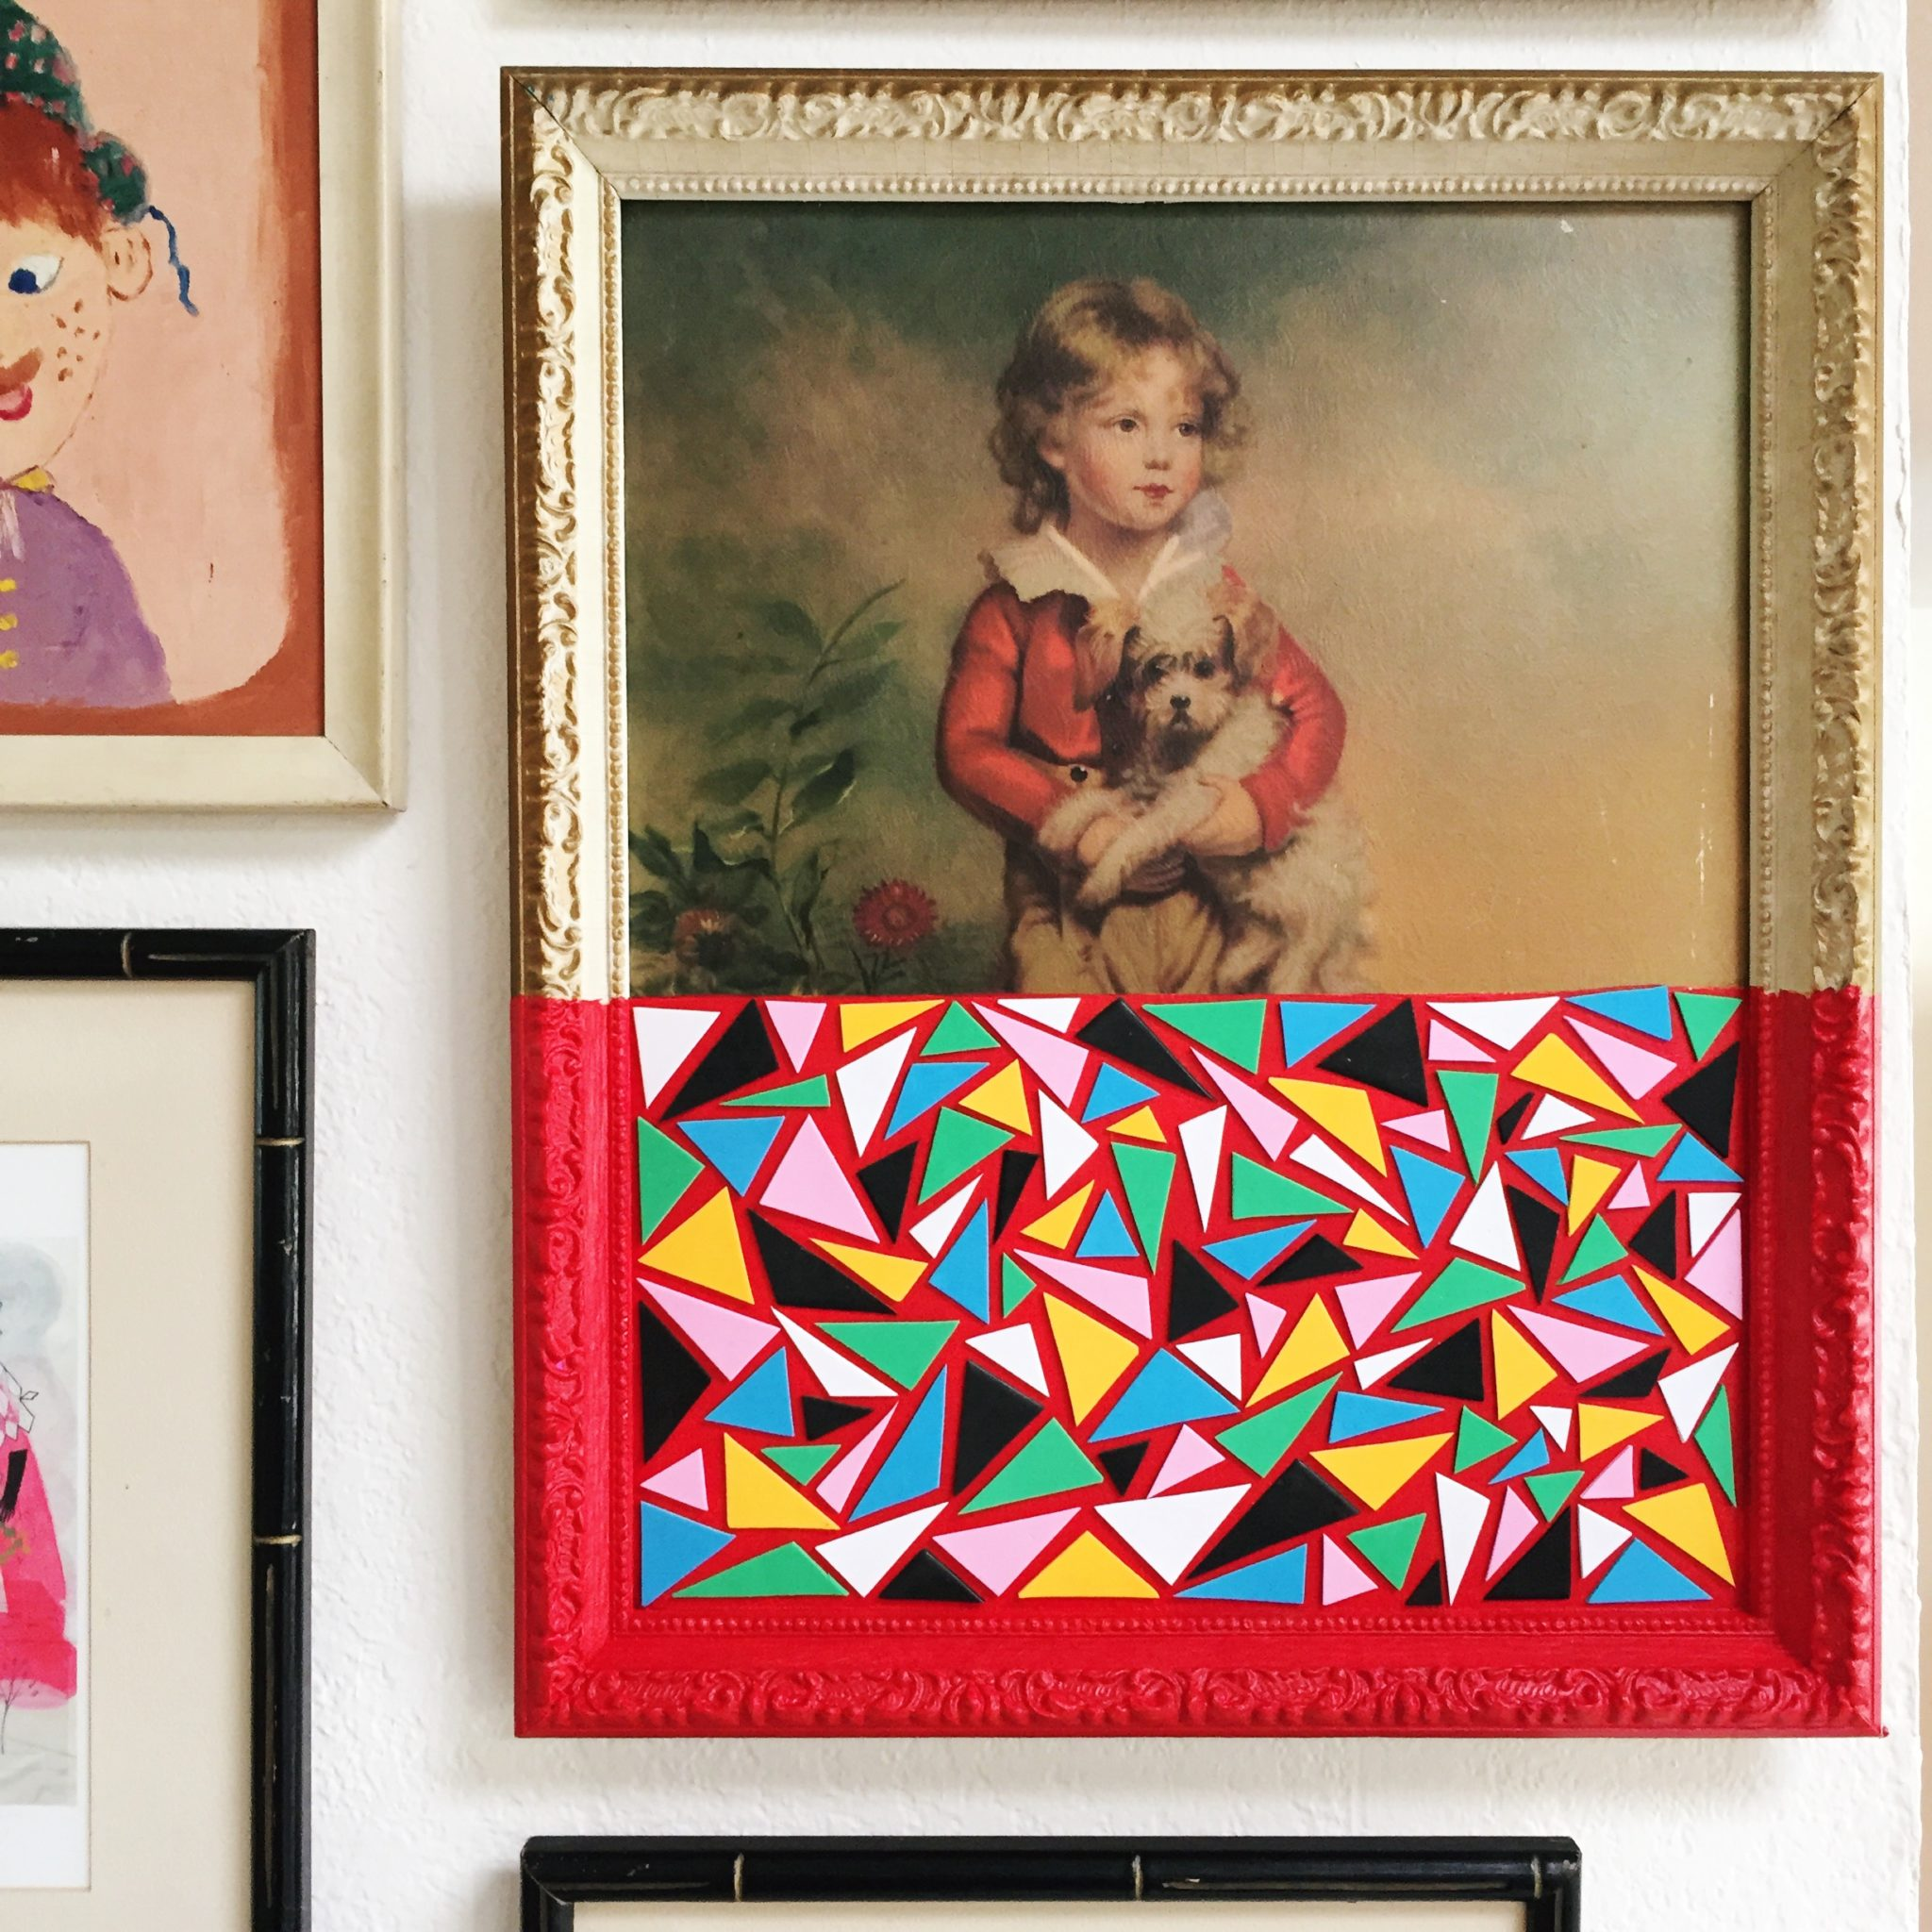 How to spice up thrift store art with foam stickers and paint.